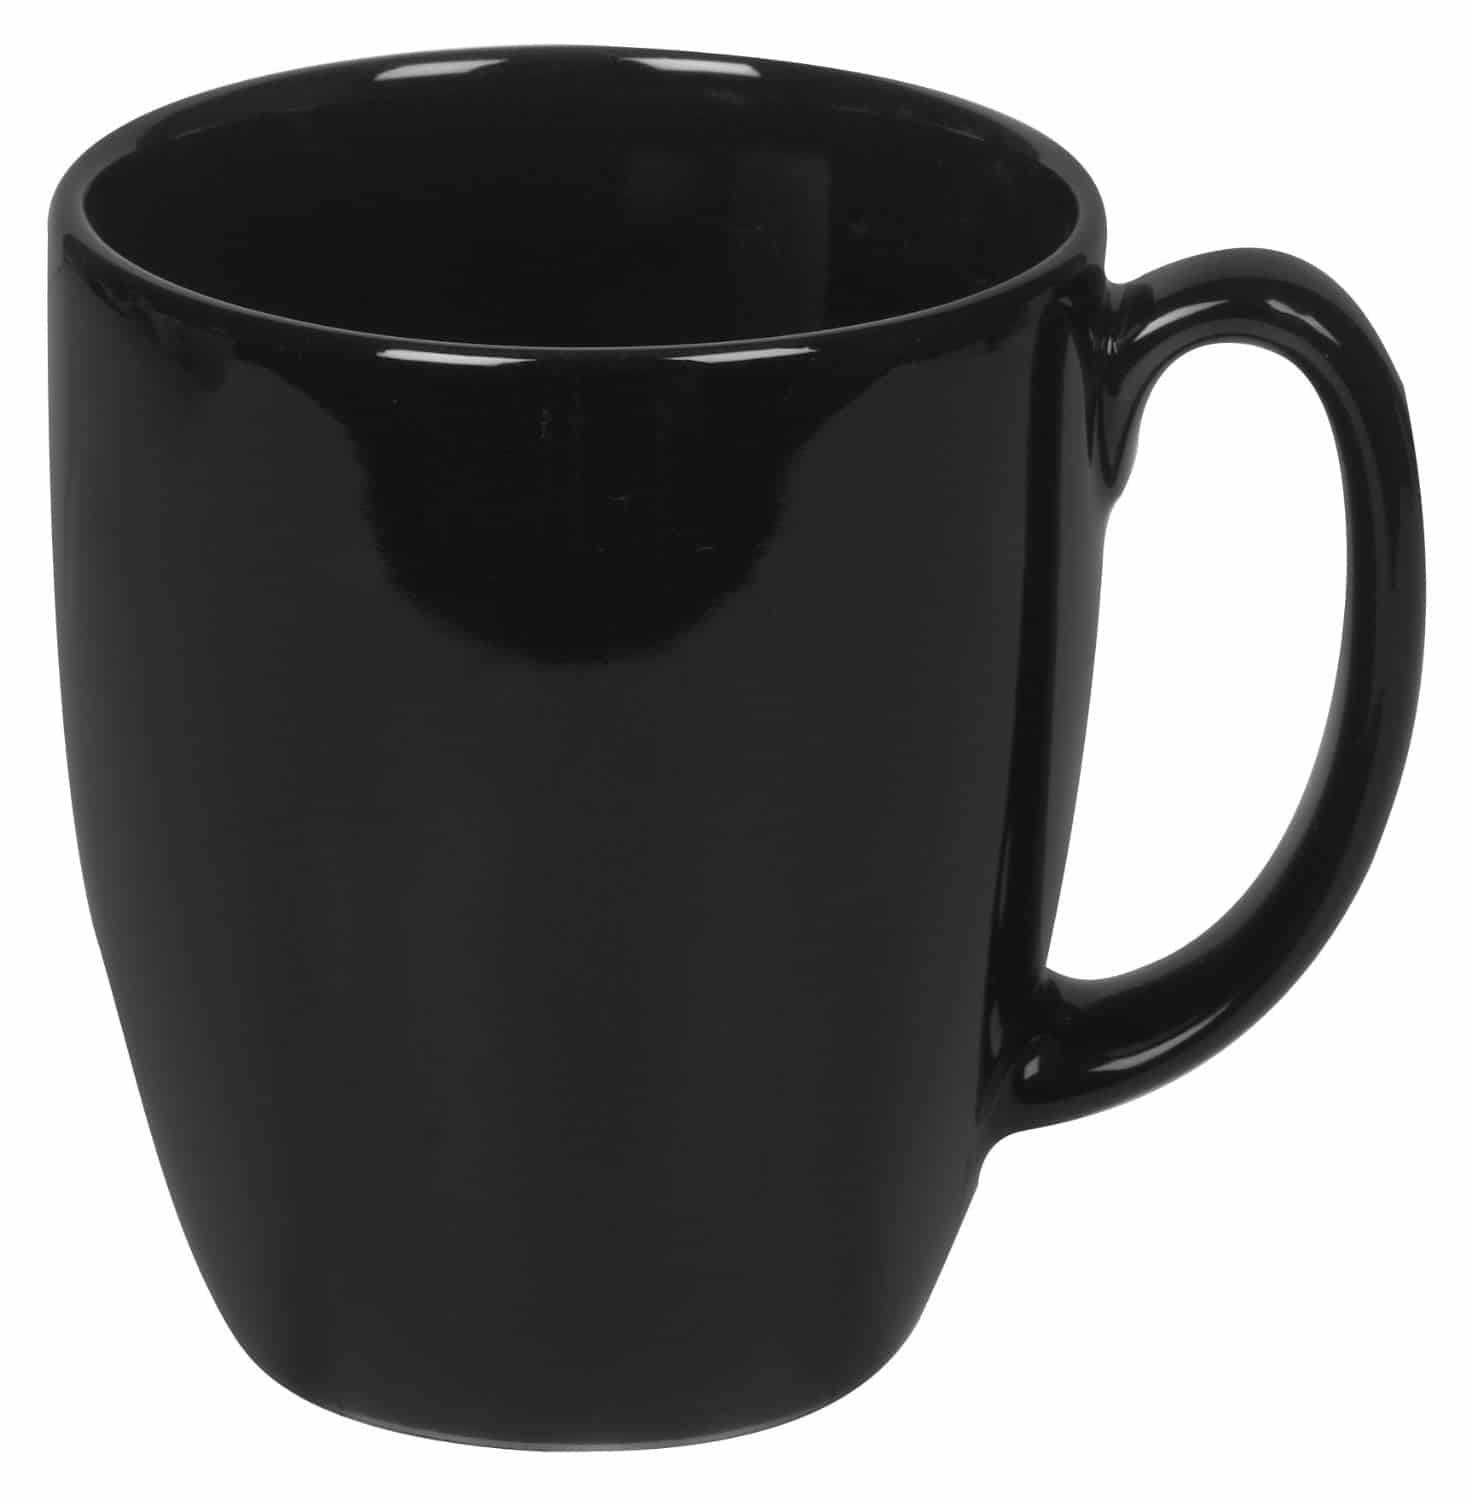 Awesome Crafting Blanks You Can Get on Amazon Prime : Coffee Mug | www.thepinningmama.com